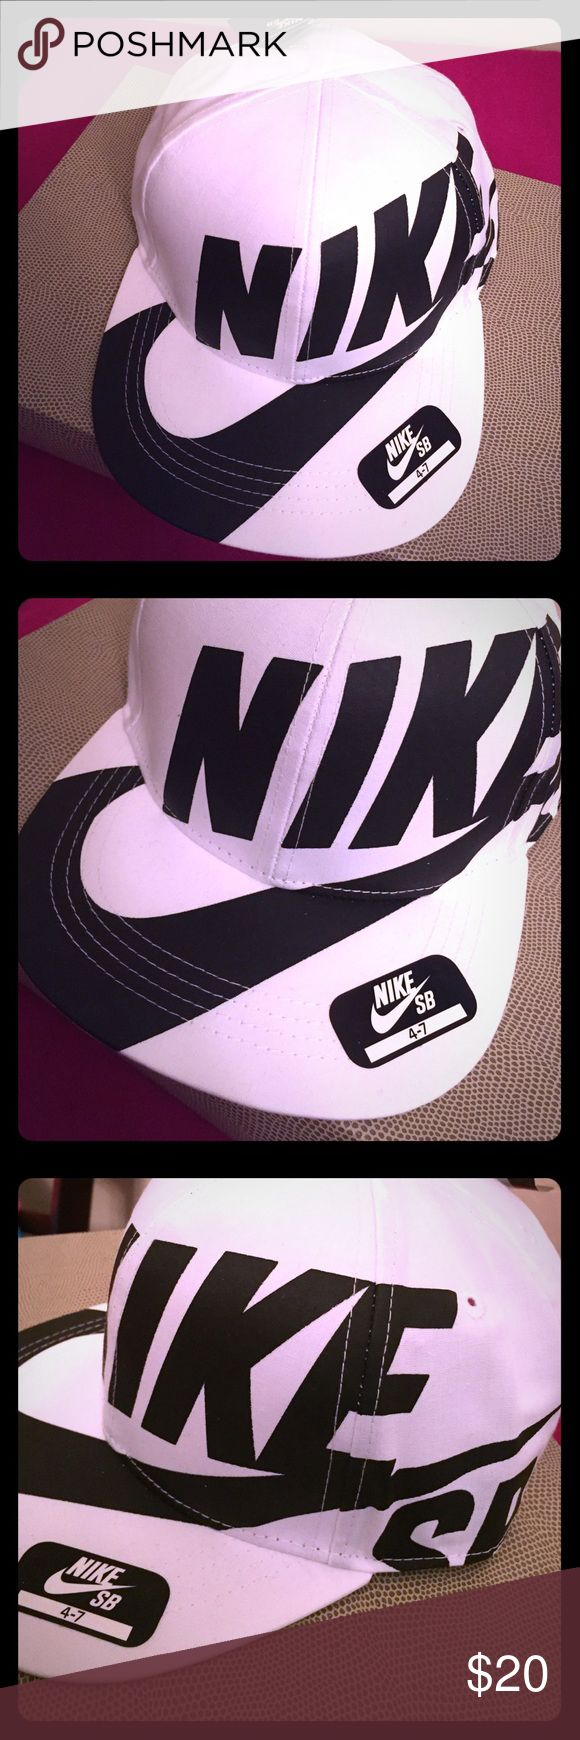 nike kids snapback cap unique design that you will not find elsewhere authentic nike